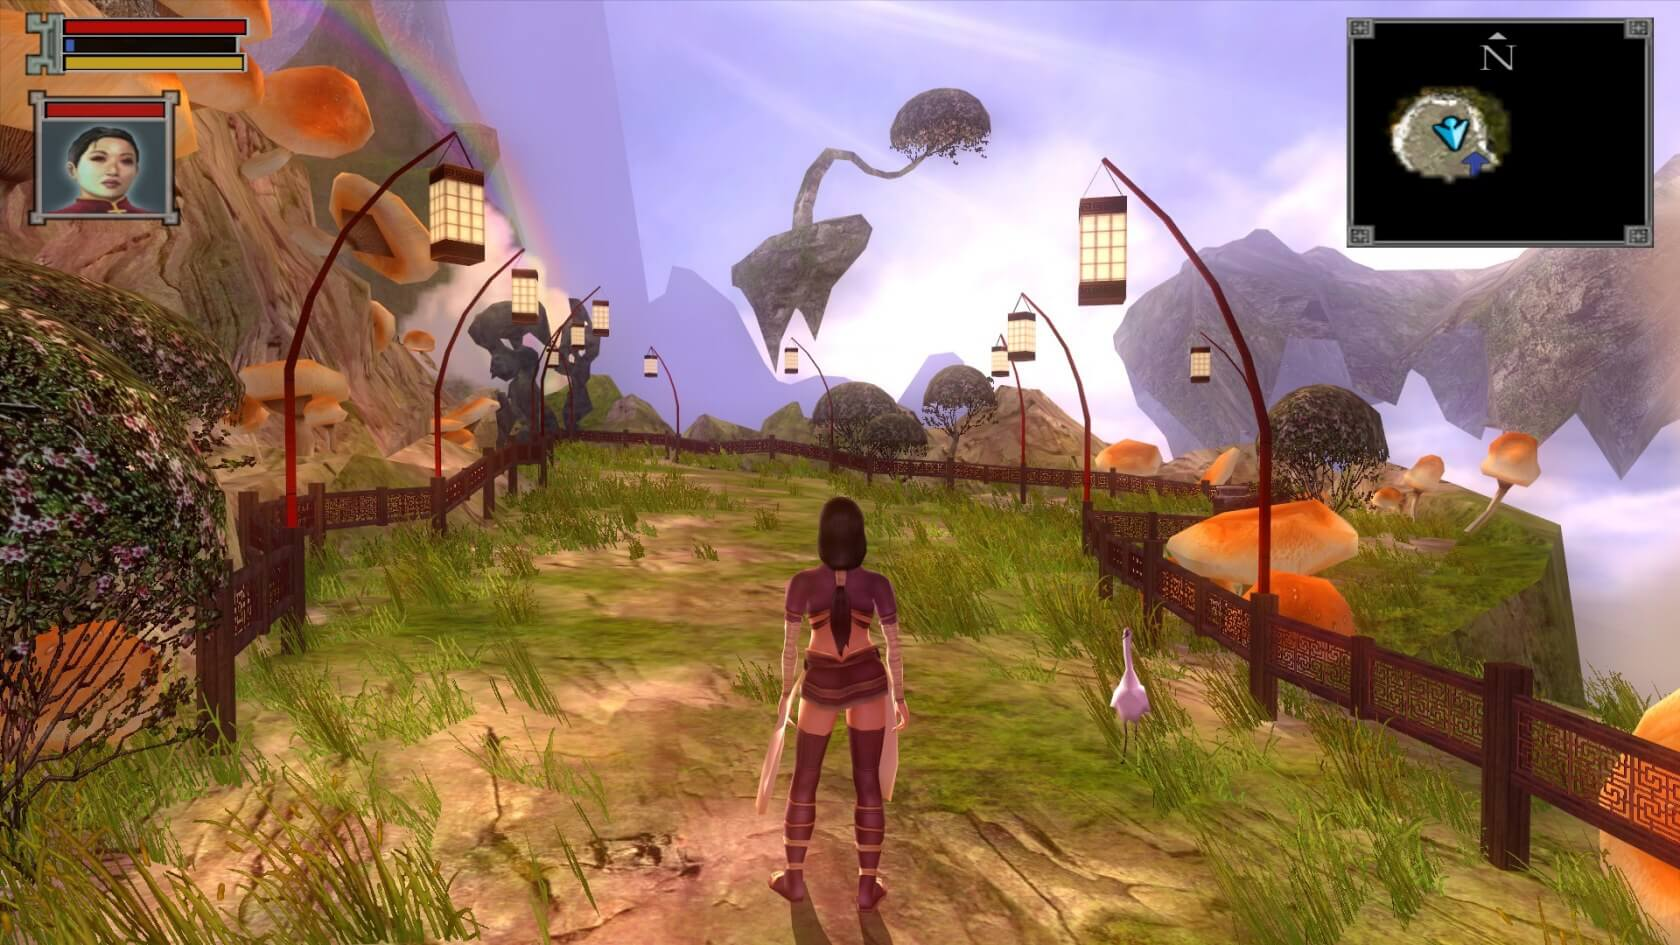 Electronic Arts files for Jade Empire trademark, hinting at a franchise revival | TechSpot